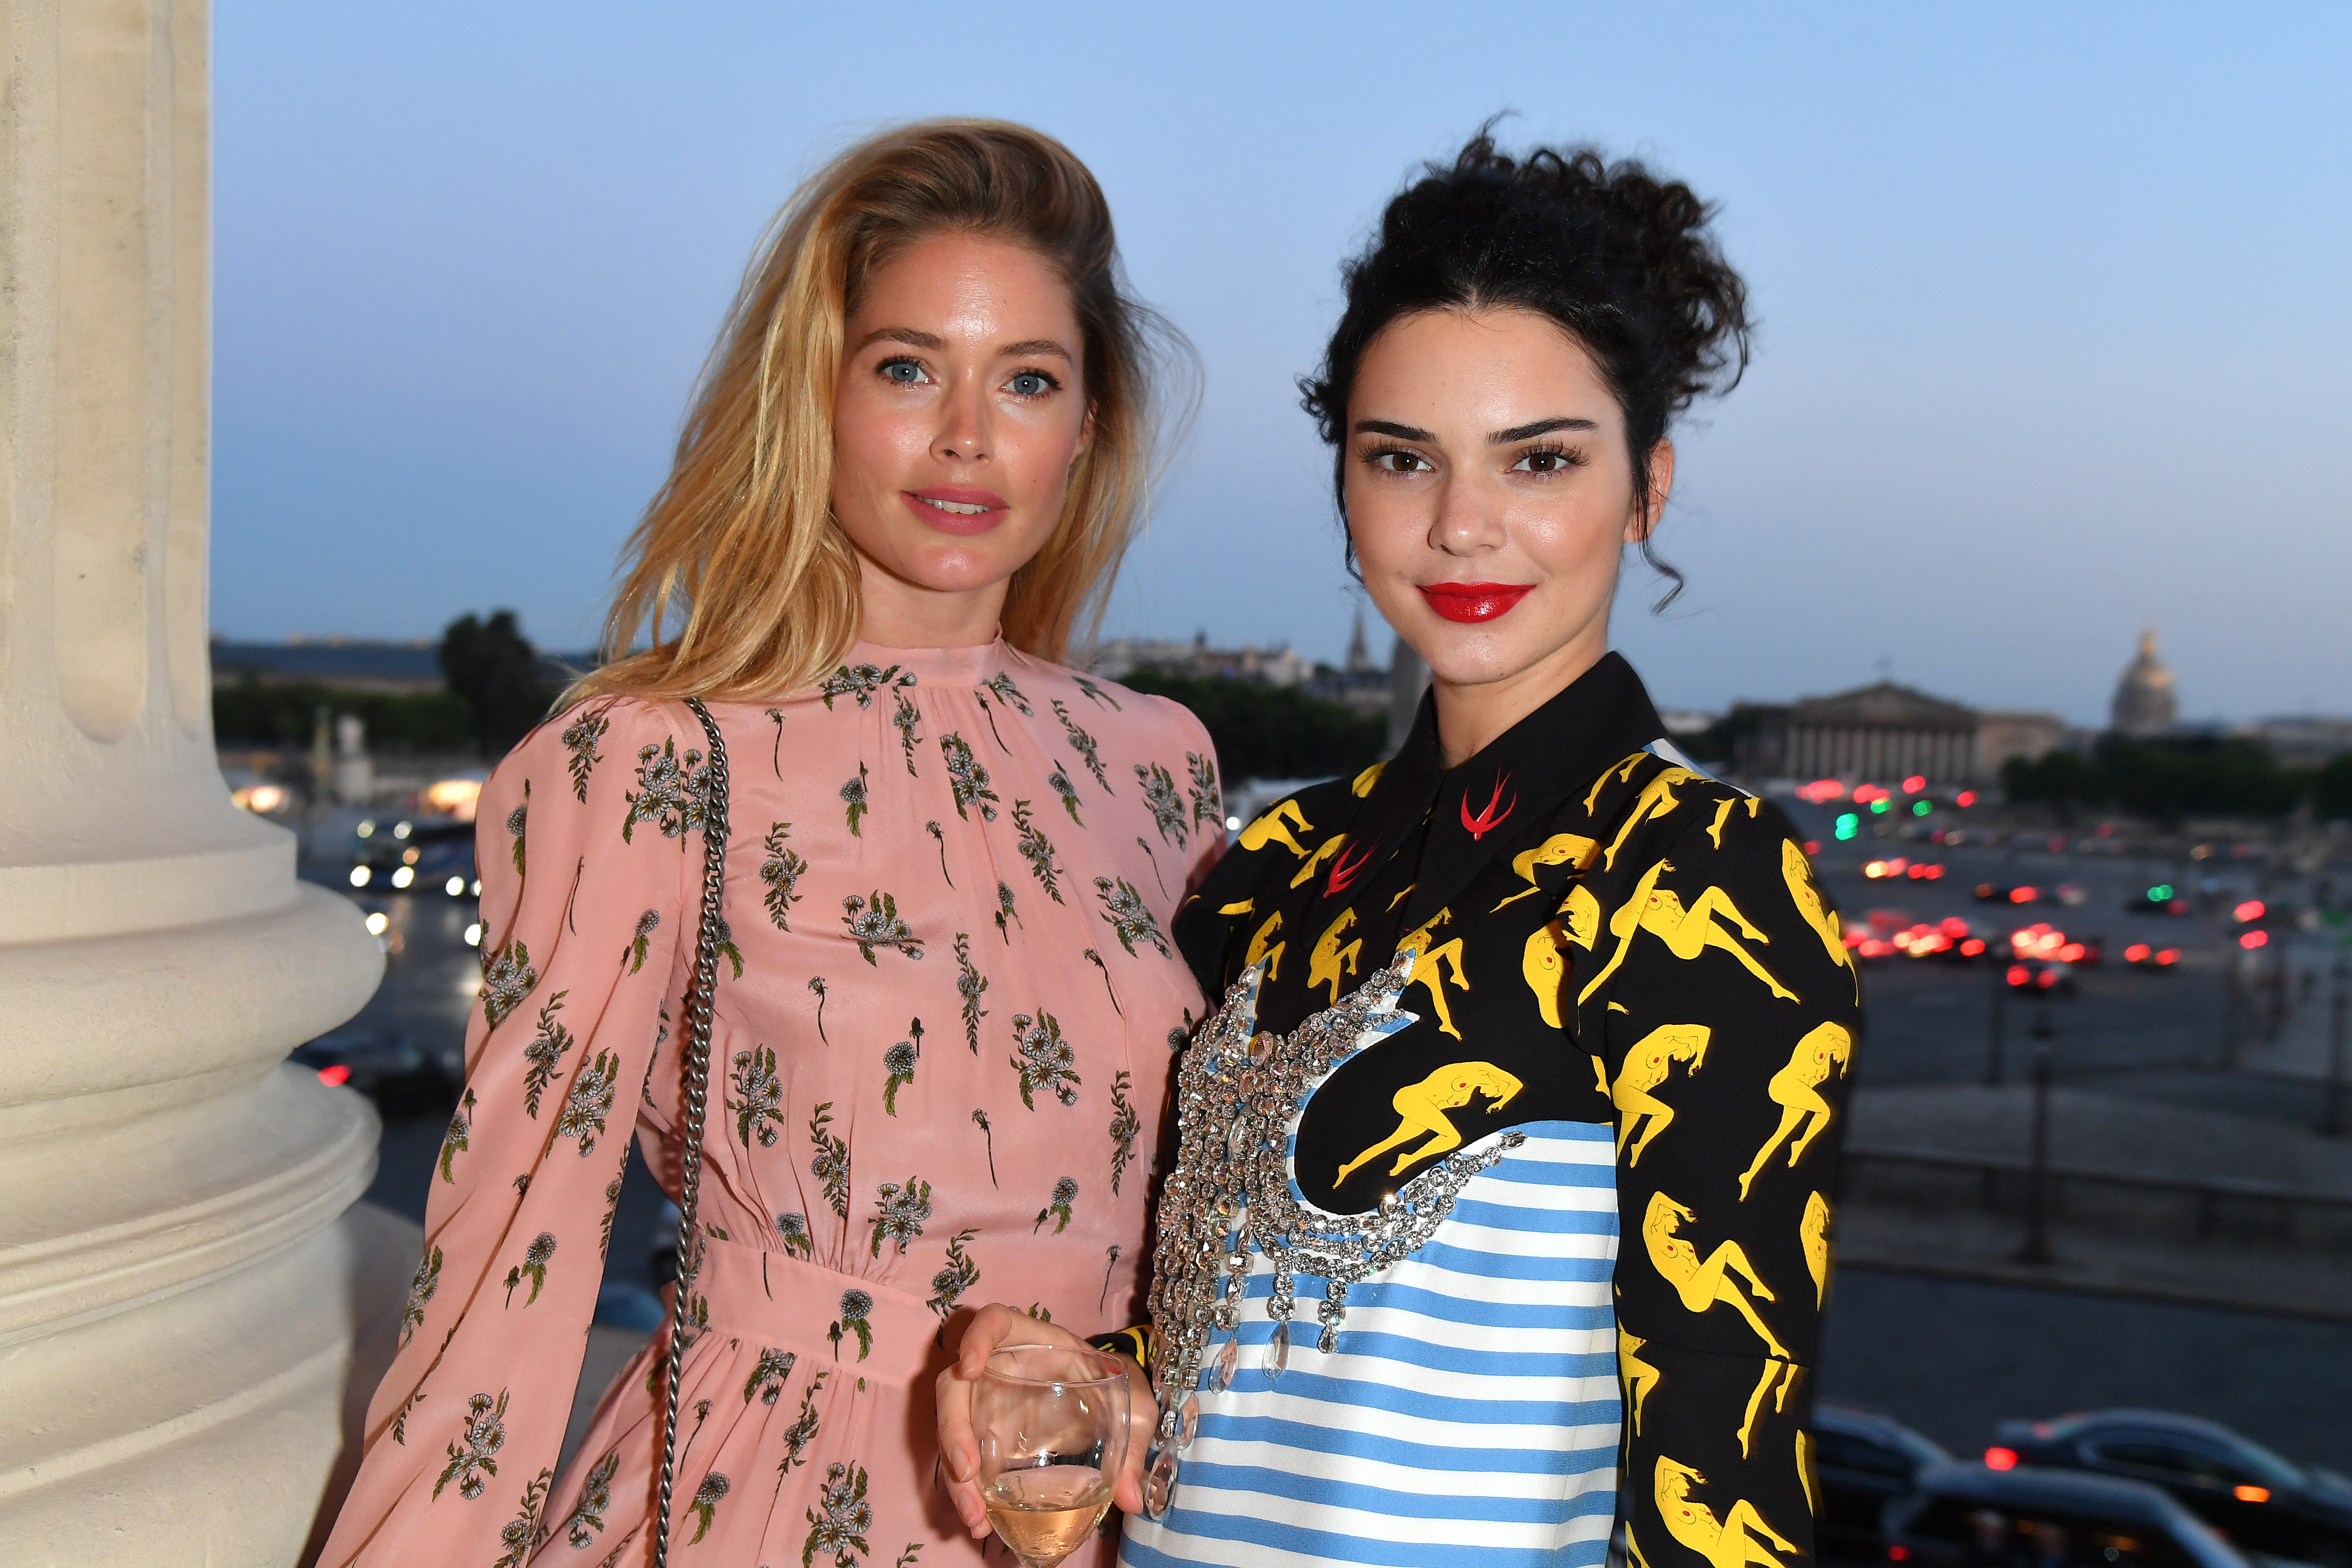 PARIS, FRANCE - JULY 02: Doutzen Kroes and Kendall Jenner attend Miu Miu Cruise Collection cocktail & party as part of Haute Couture Paris Fashion Week on July 2, 2017 in Paris, France.  (Photo by Dominique Charriau/WireImage) *** Local Caption *** Doutzen Kroes;Kendall Jenner